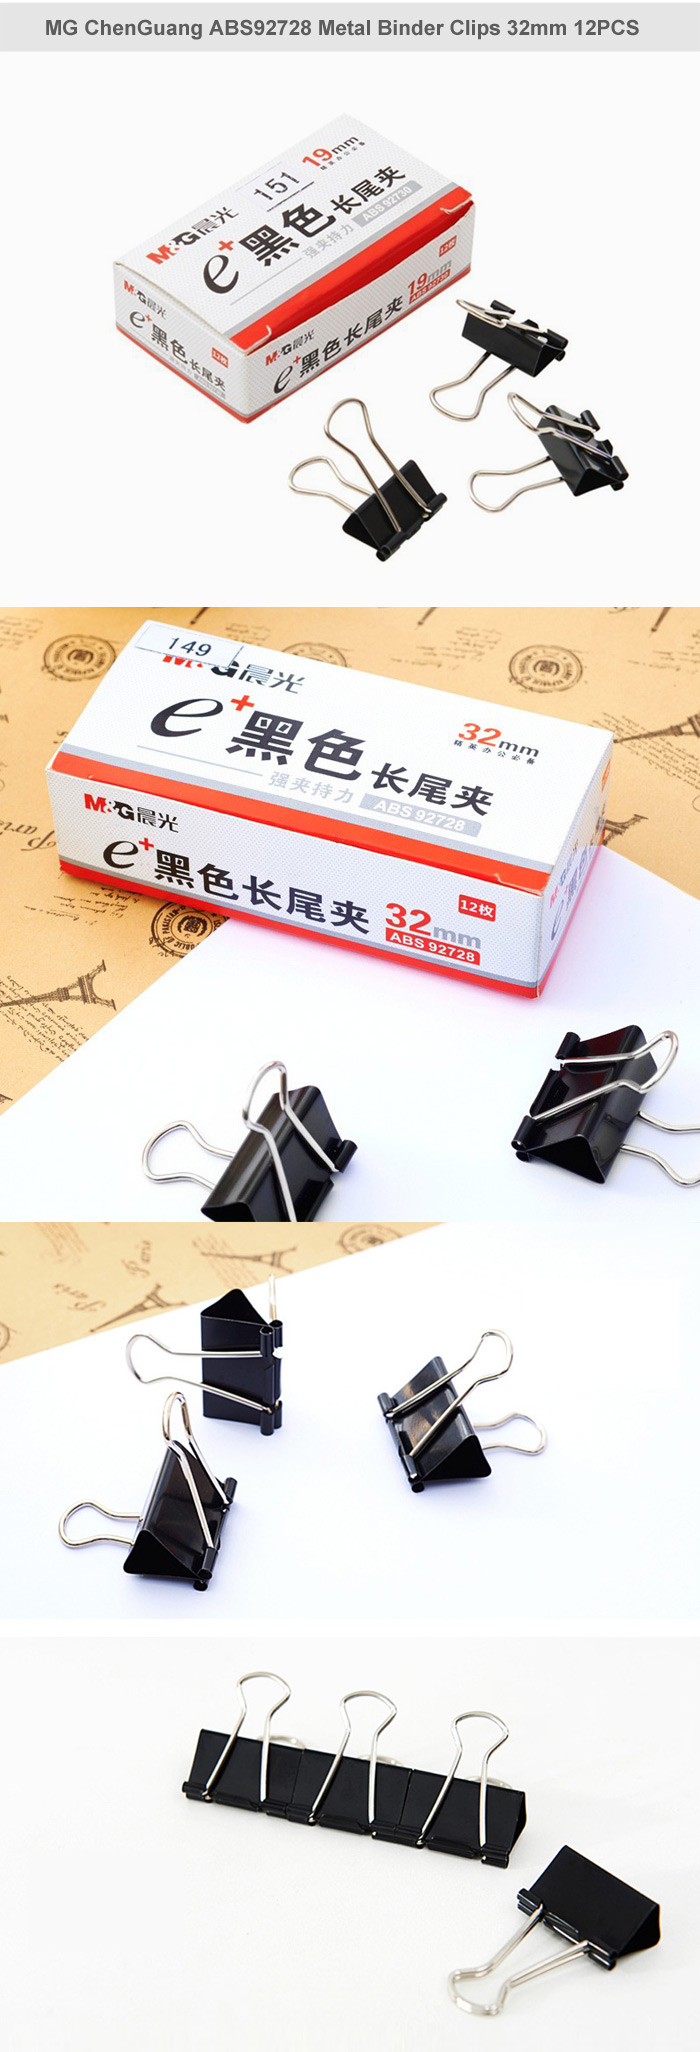 MG ChenGuang ABS92728 Metal Binder Clips 32mm 12PCS Paper Long Tail Clamp